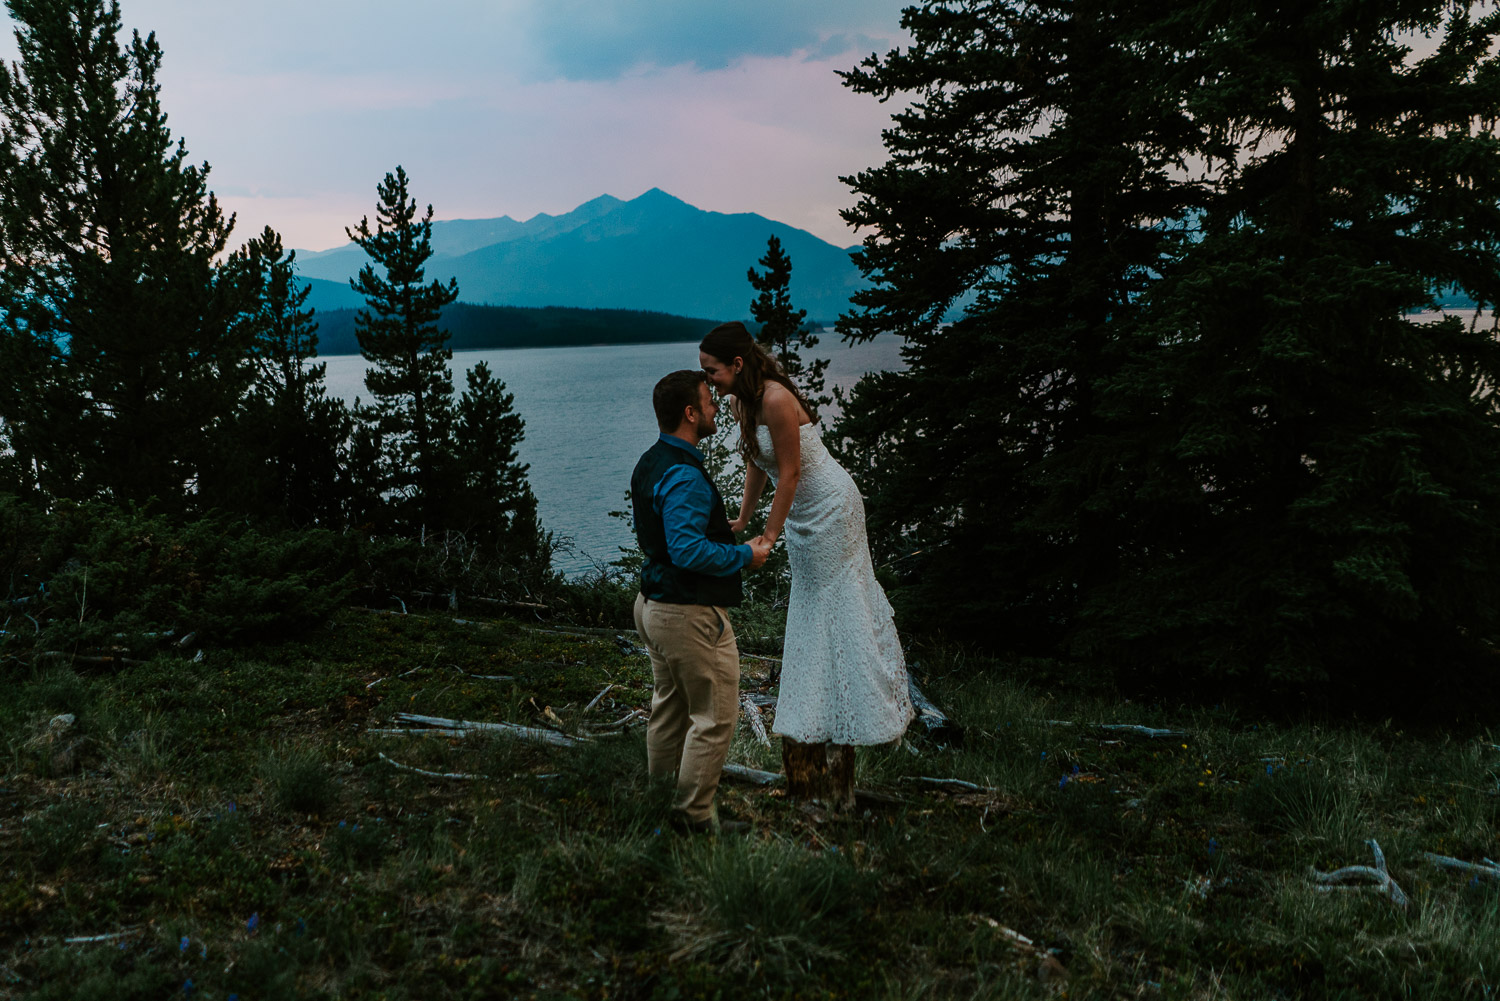 Best Of 2018 Wedding + Elopement + Couples Photography, Colorado